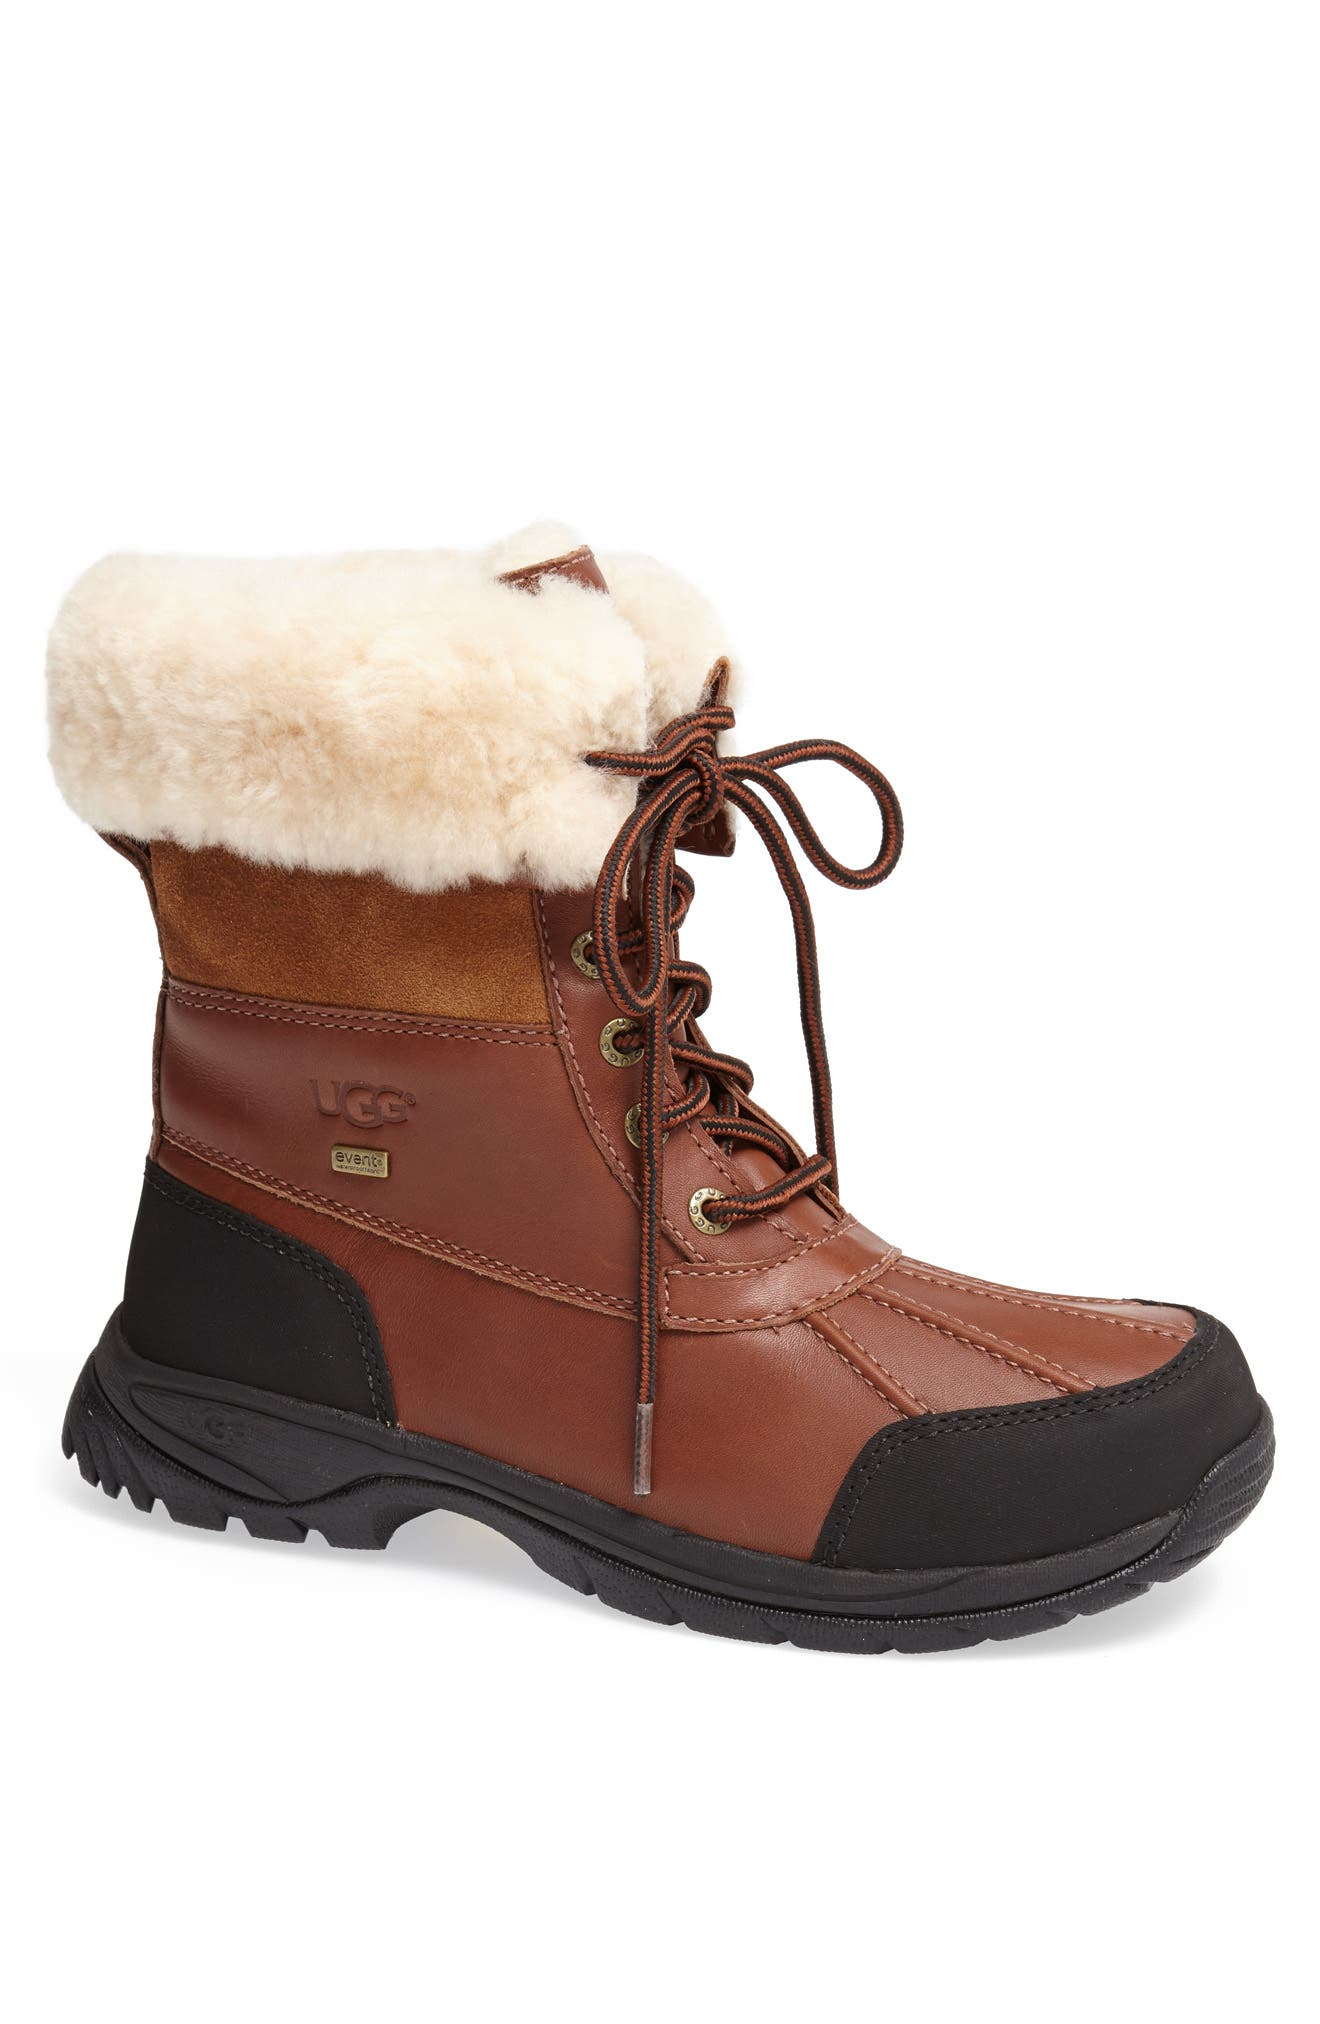 Butte Waterproof Boot,                             Main thumbnail 1, color,                             WORCHESTER